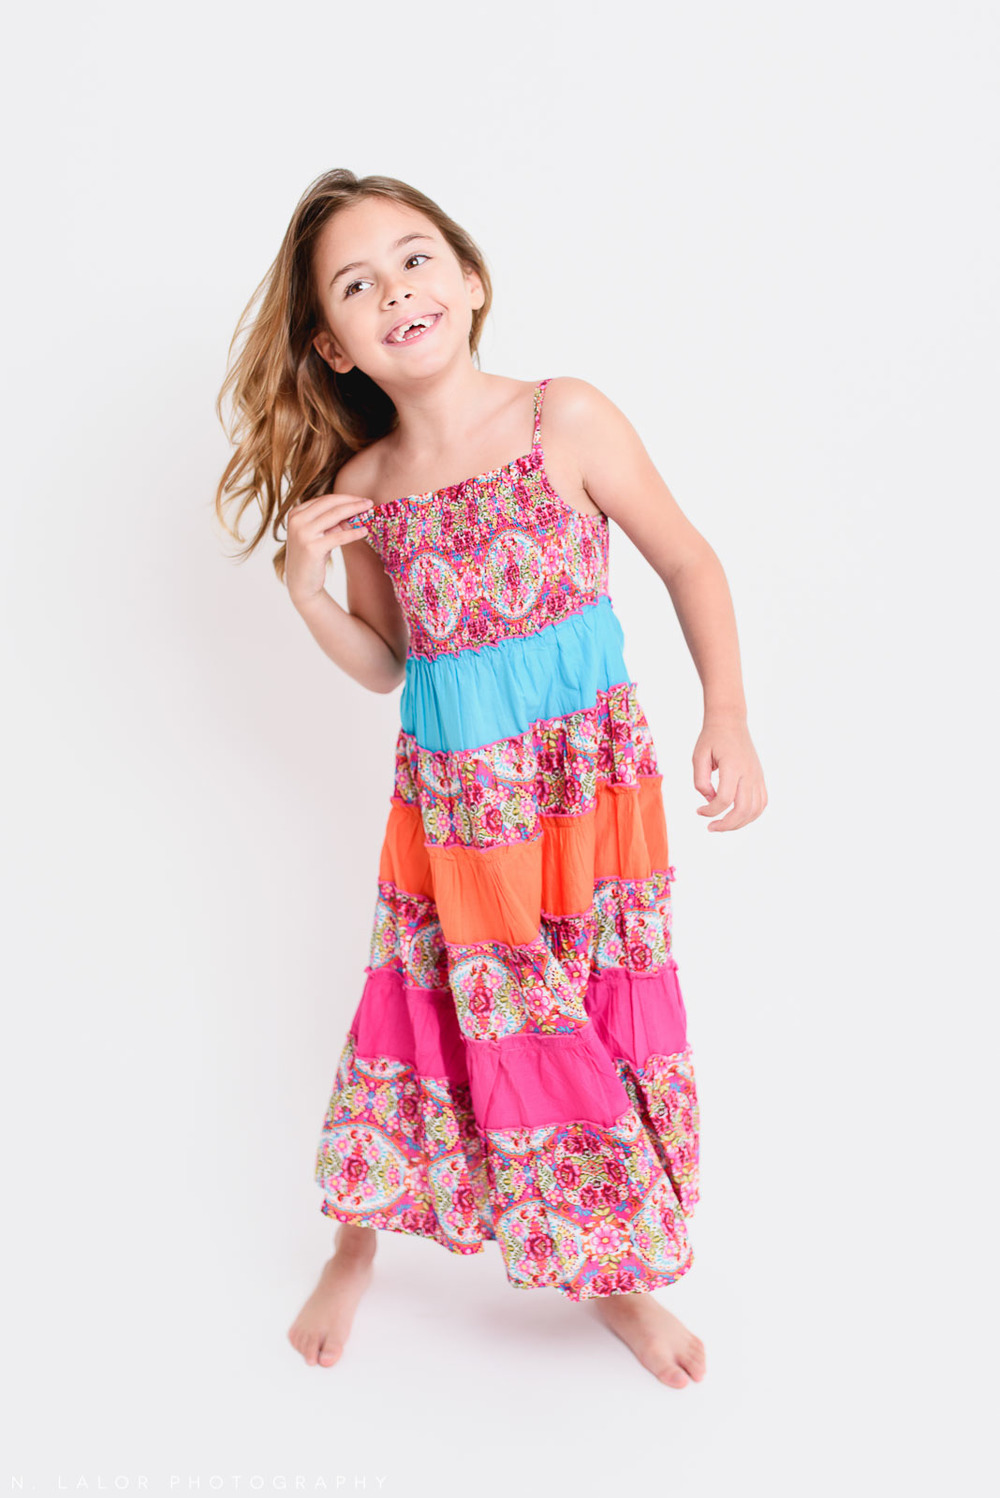 Summer dress. Editorial studio portrait of 6-year old girl by N. Lalor Photography in Greenwich, Connecticut.